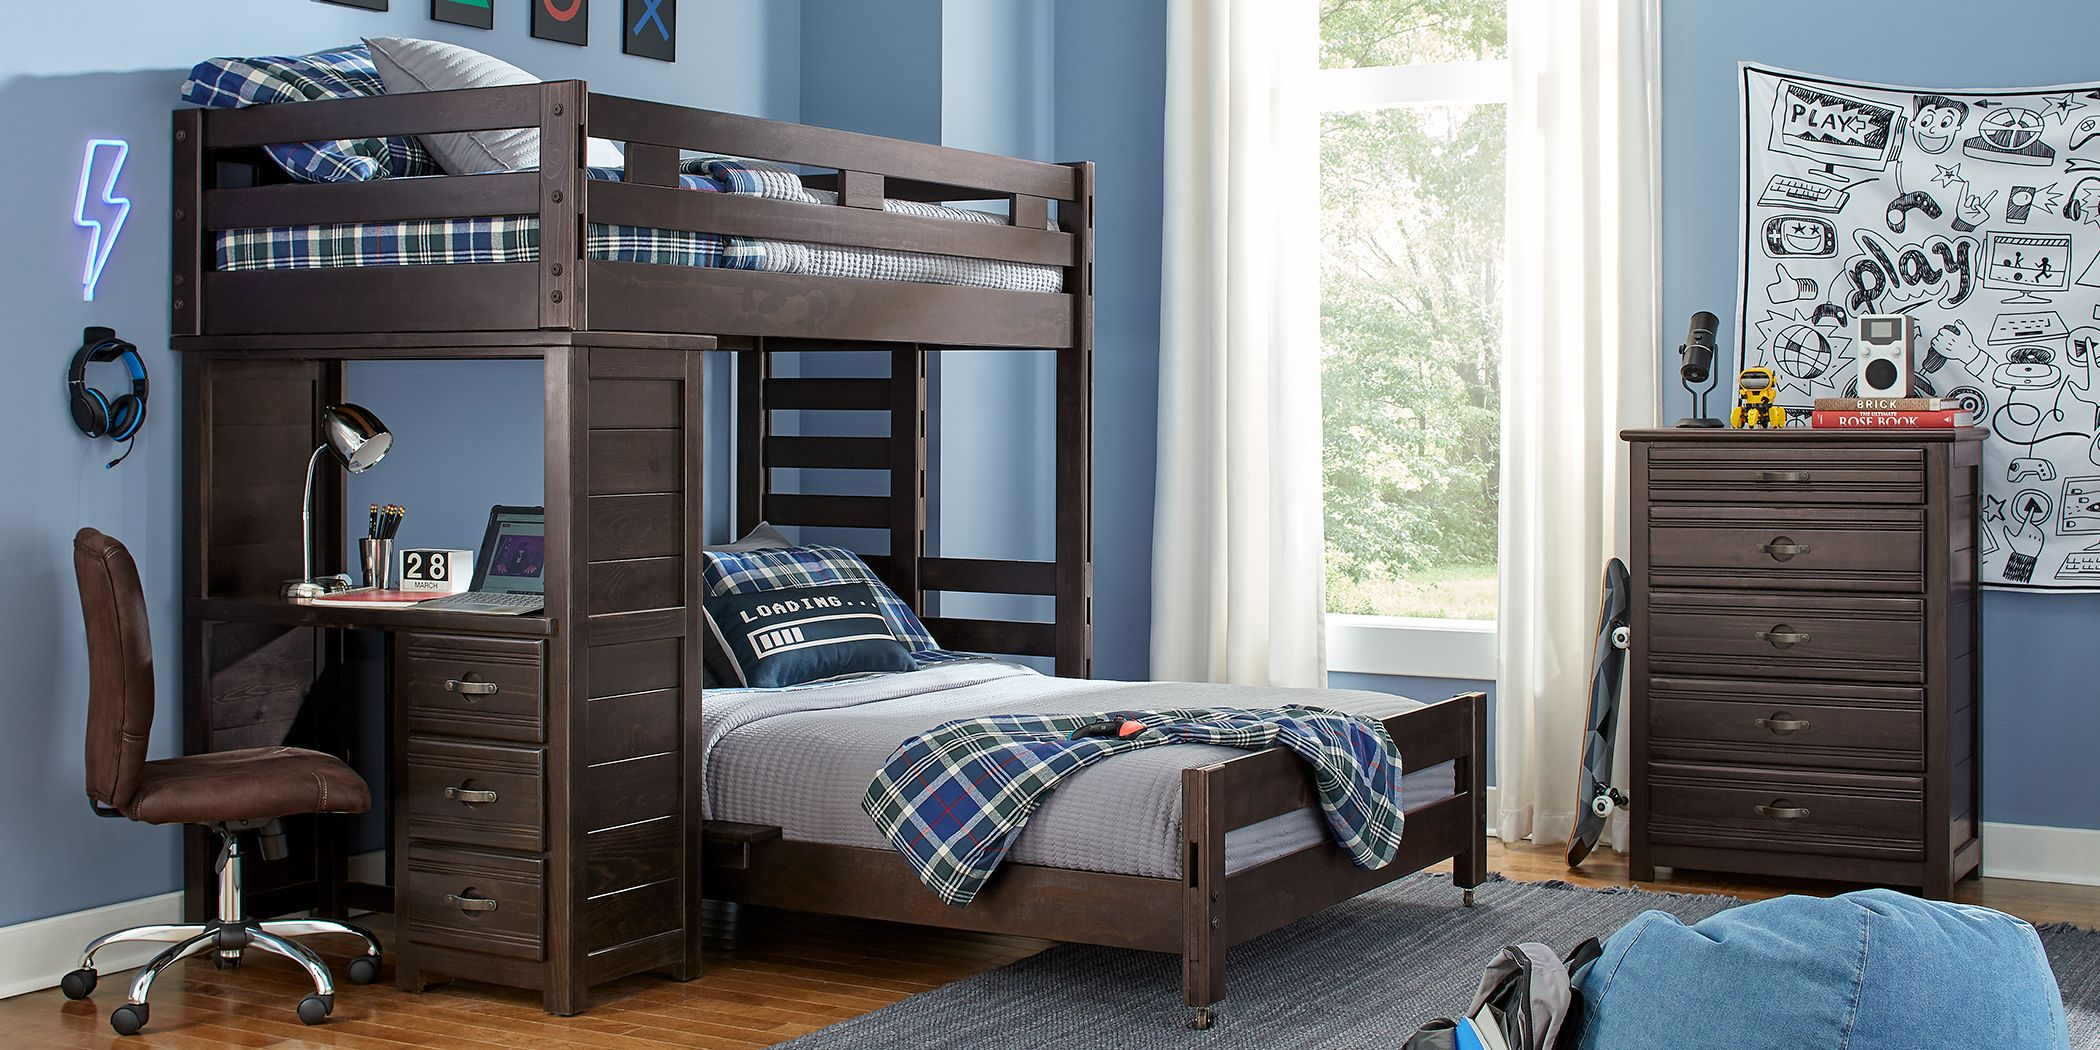 Picture of: Dorm Room Student Bunk Beds